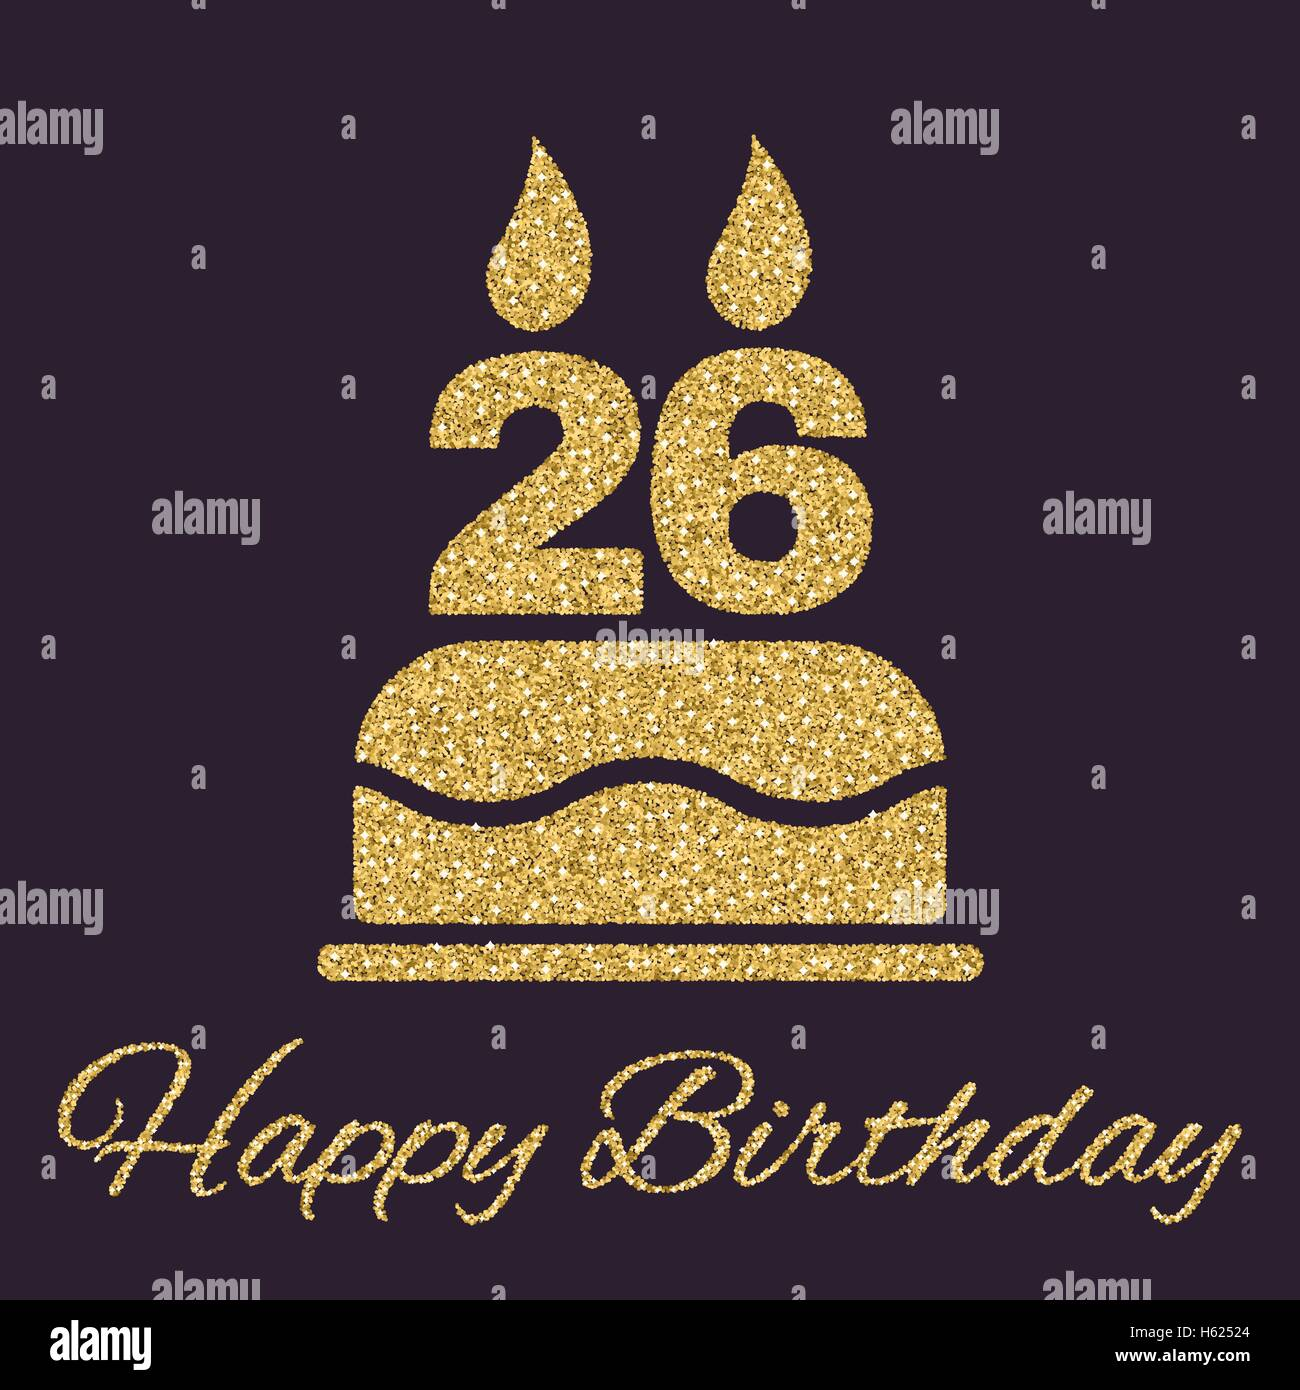 the birthday cake with candles in the form of number 26 icon birthday symbol gold sparkles and glitter